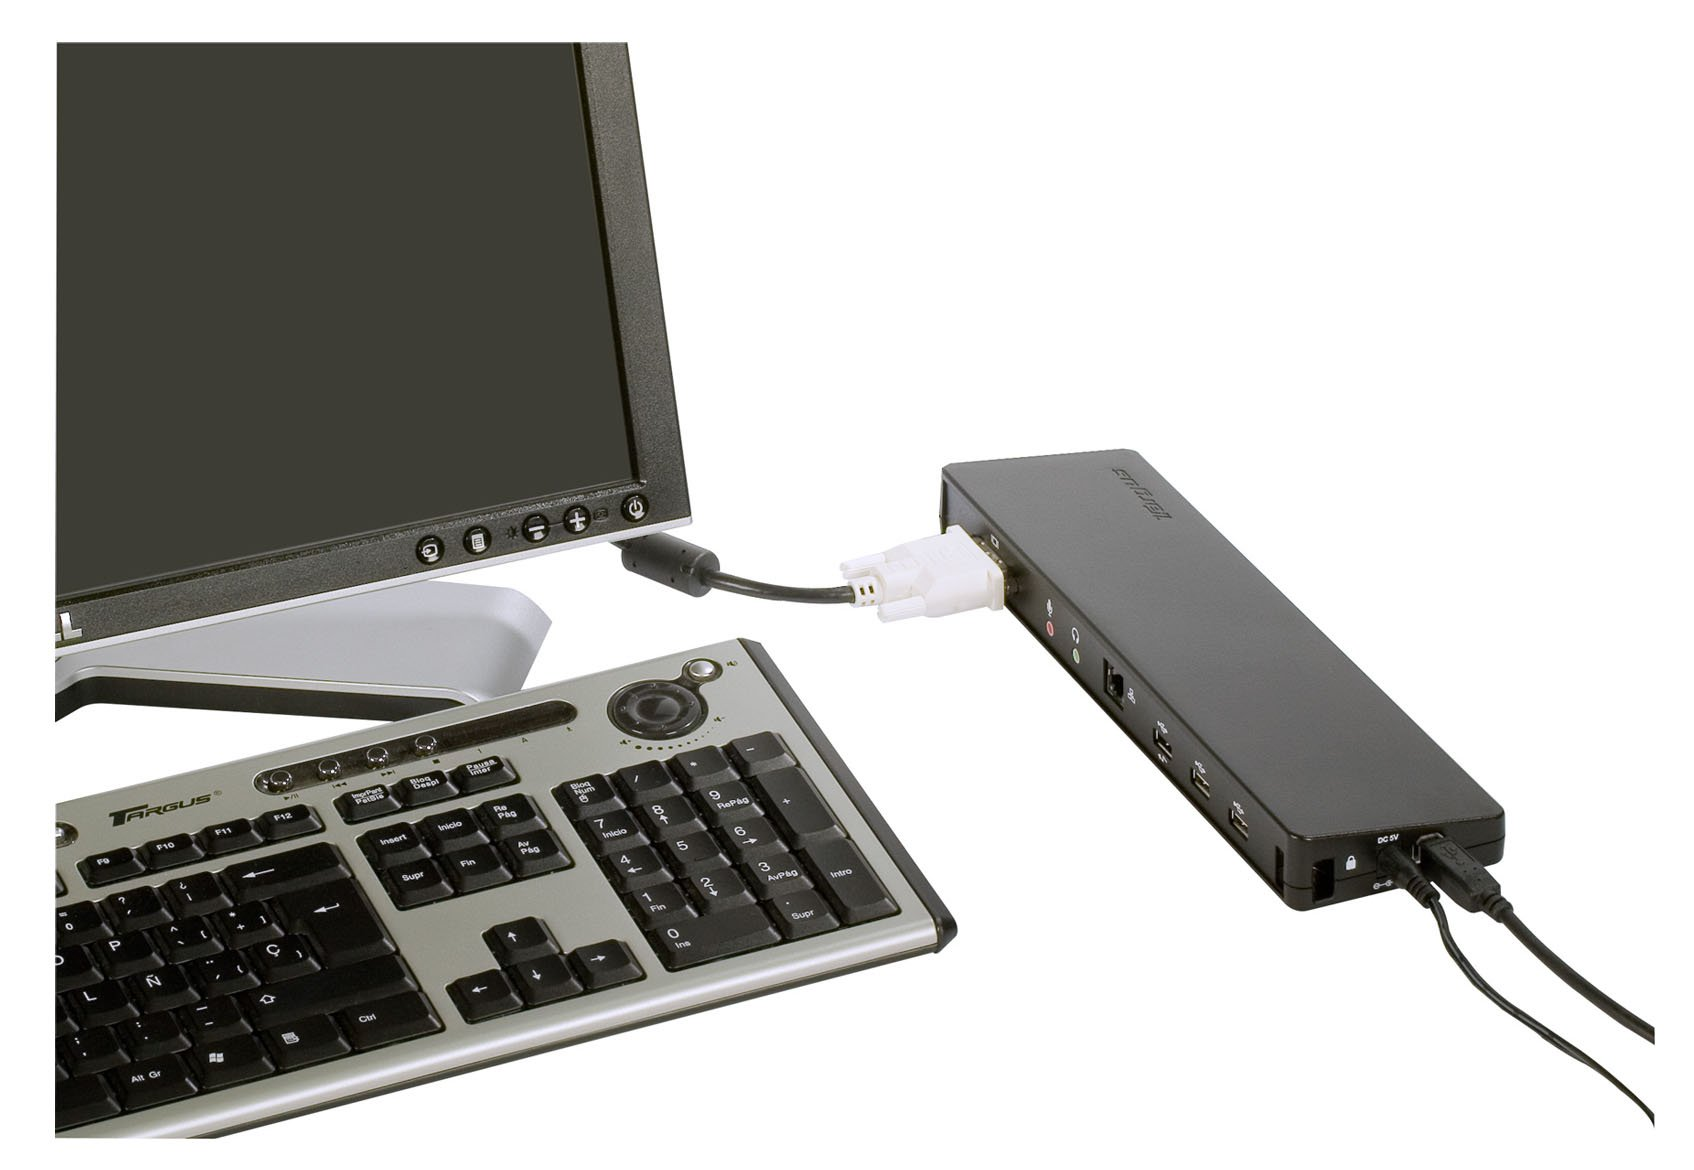 Targus  ACP51USZ USB 2.0 Docking Station with Video by Targus